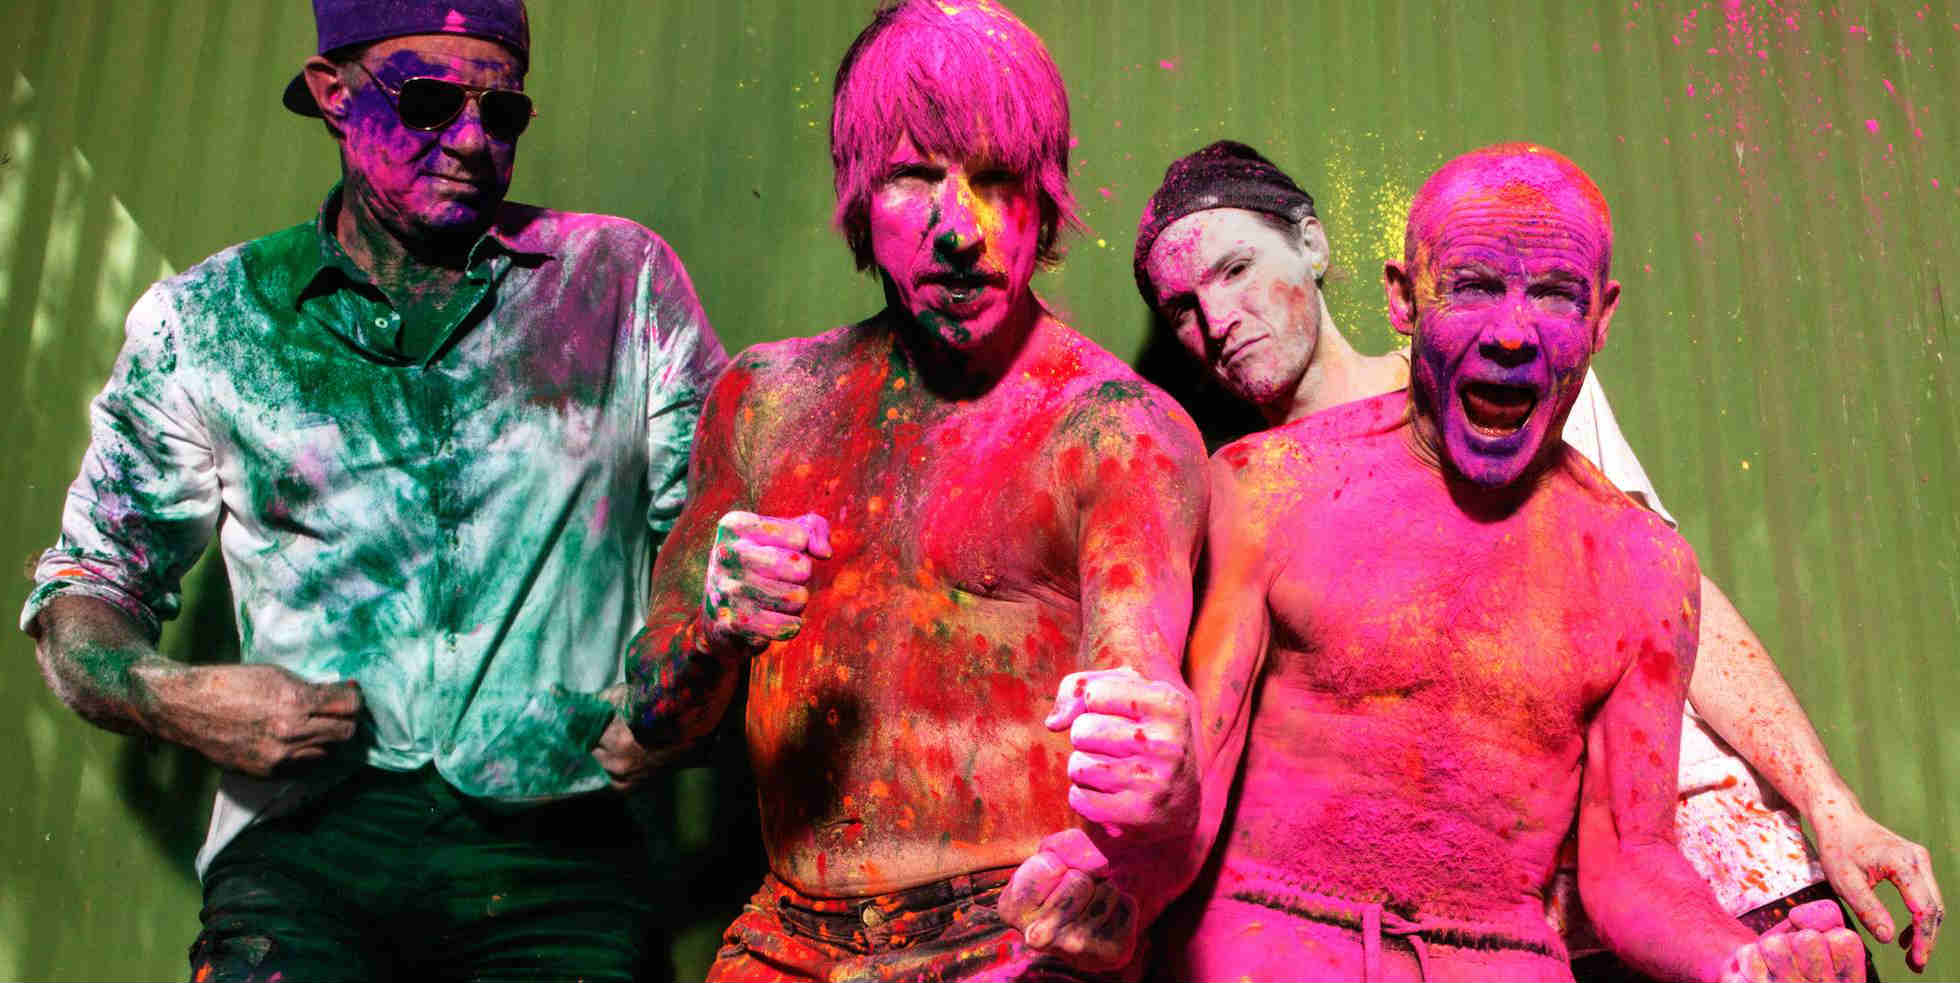 Red Hot Chili Peppers HD Desktop Wallpapers | 7wallpapers net